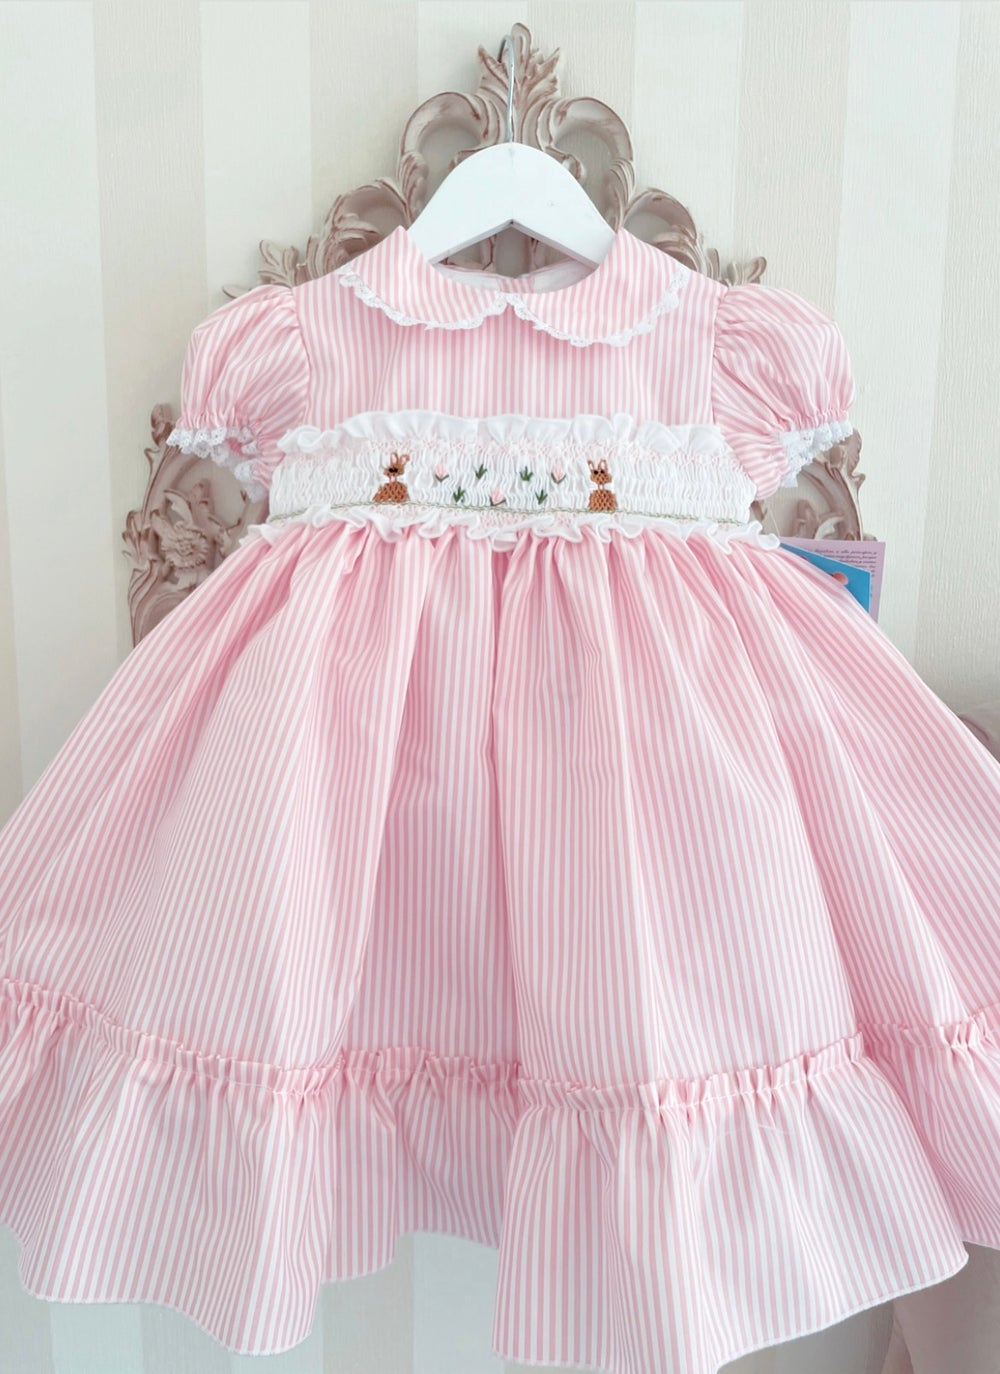 Image of Sonata pin stripe bunny dress